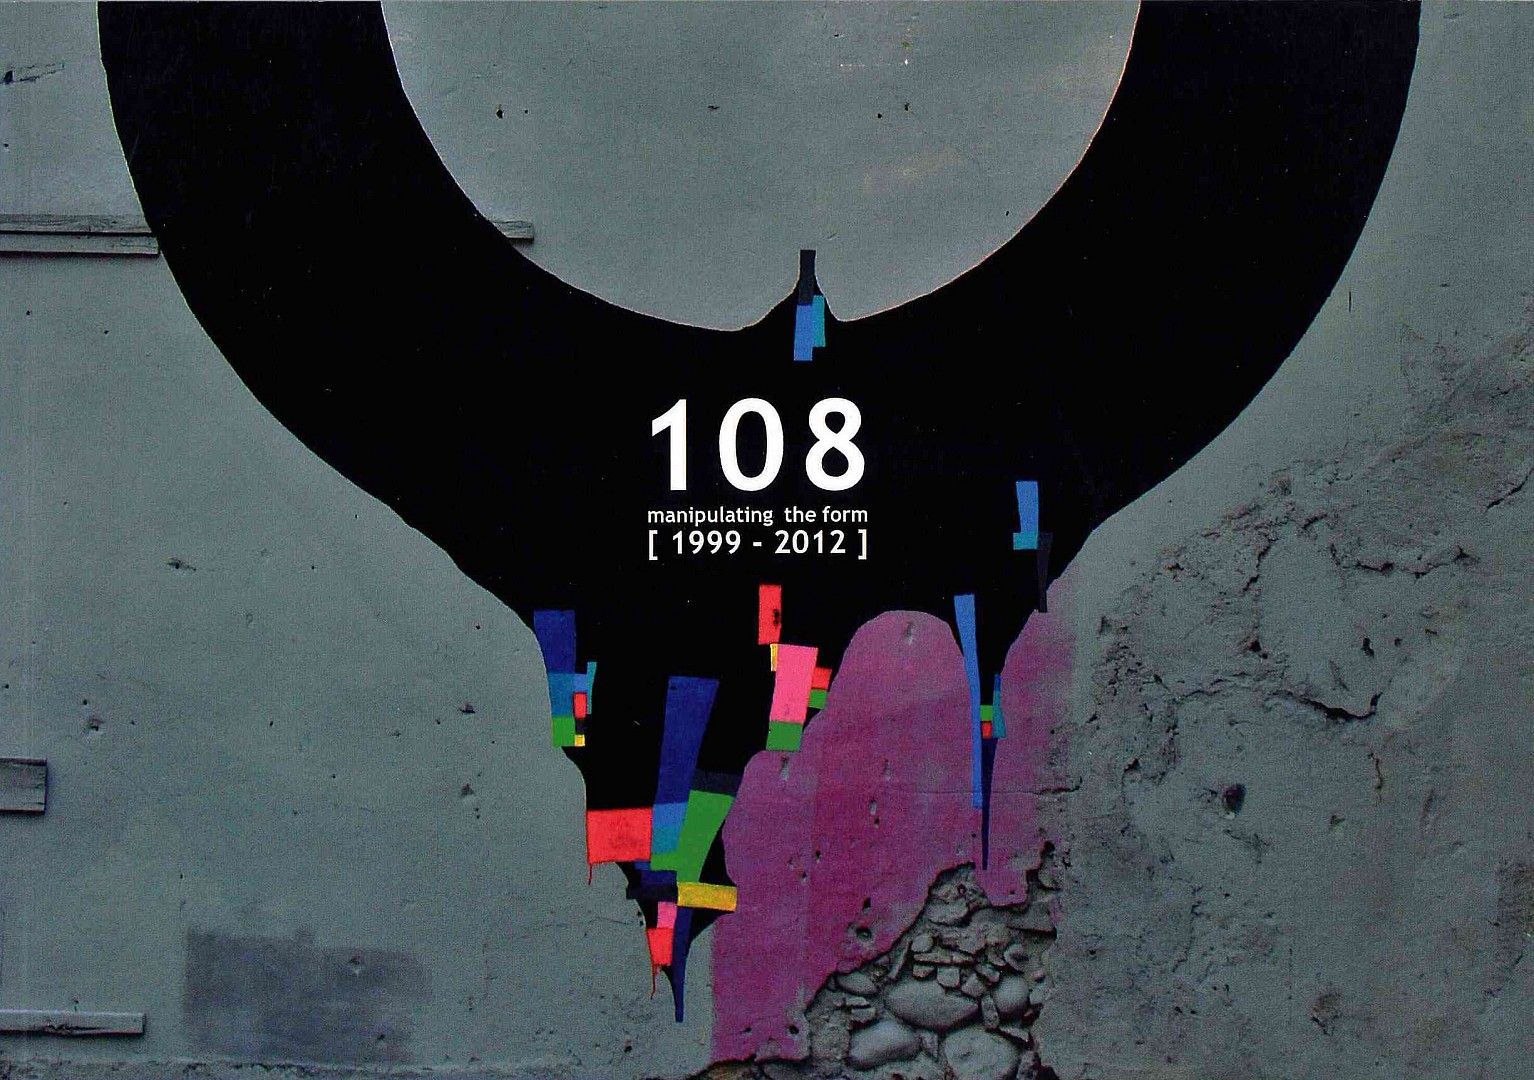 108 manipulating the form [1999-2012]